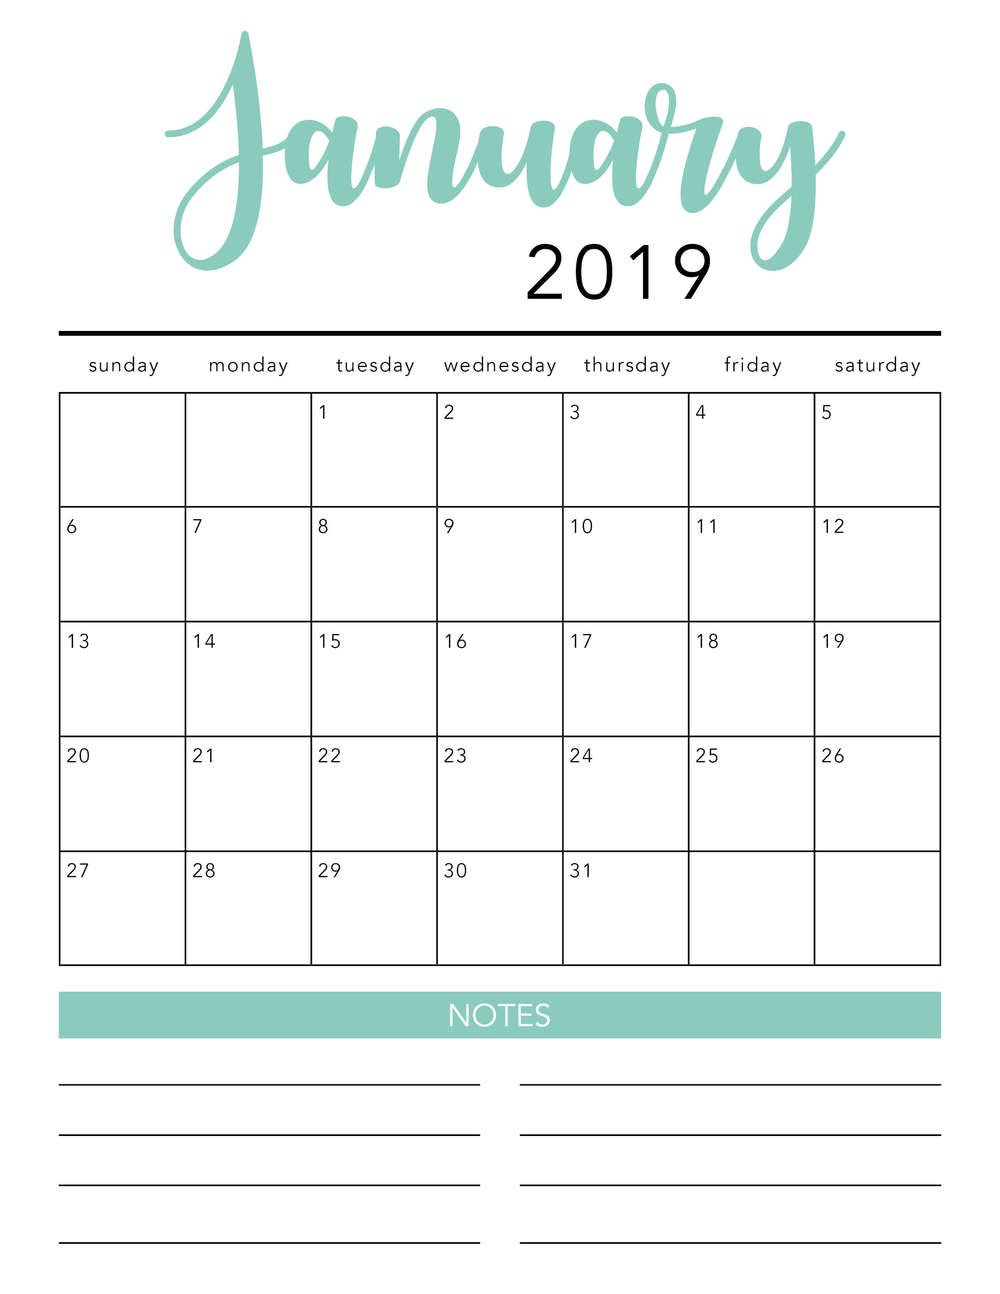 Free 2019 Printable Calendar Template (2 Colors!) - I Heart Naptime Calendar 2019 Free Template